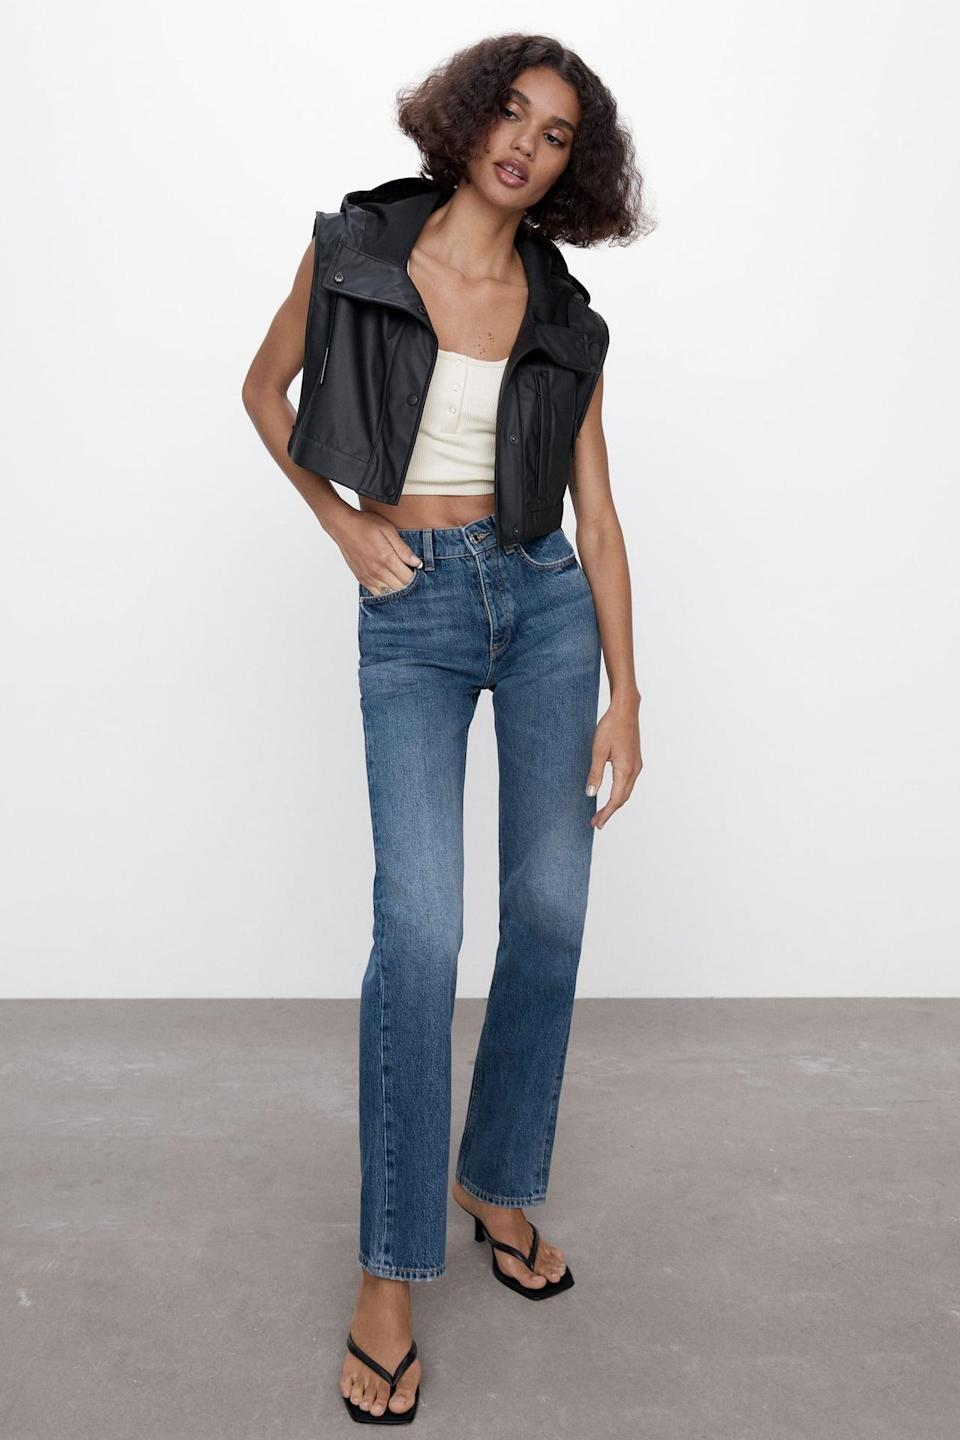 <p>People are obsessed with Zara jeans, and for good reason; they fit like a dream. You can't go wrong with these classic <span>Zara Hi Rise Straight Leg Jeans</span> ($50).</p>